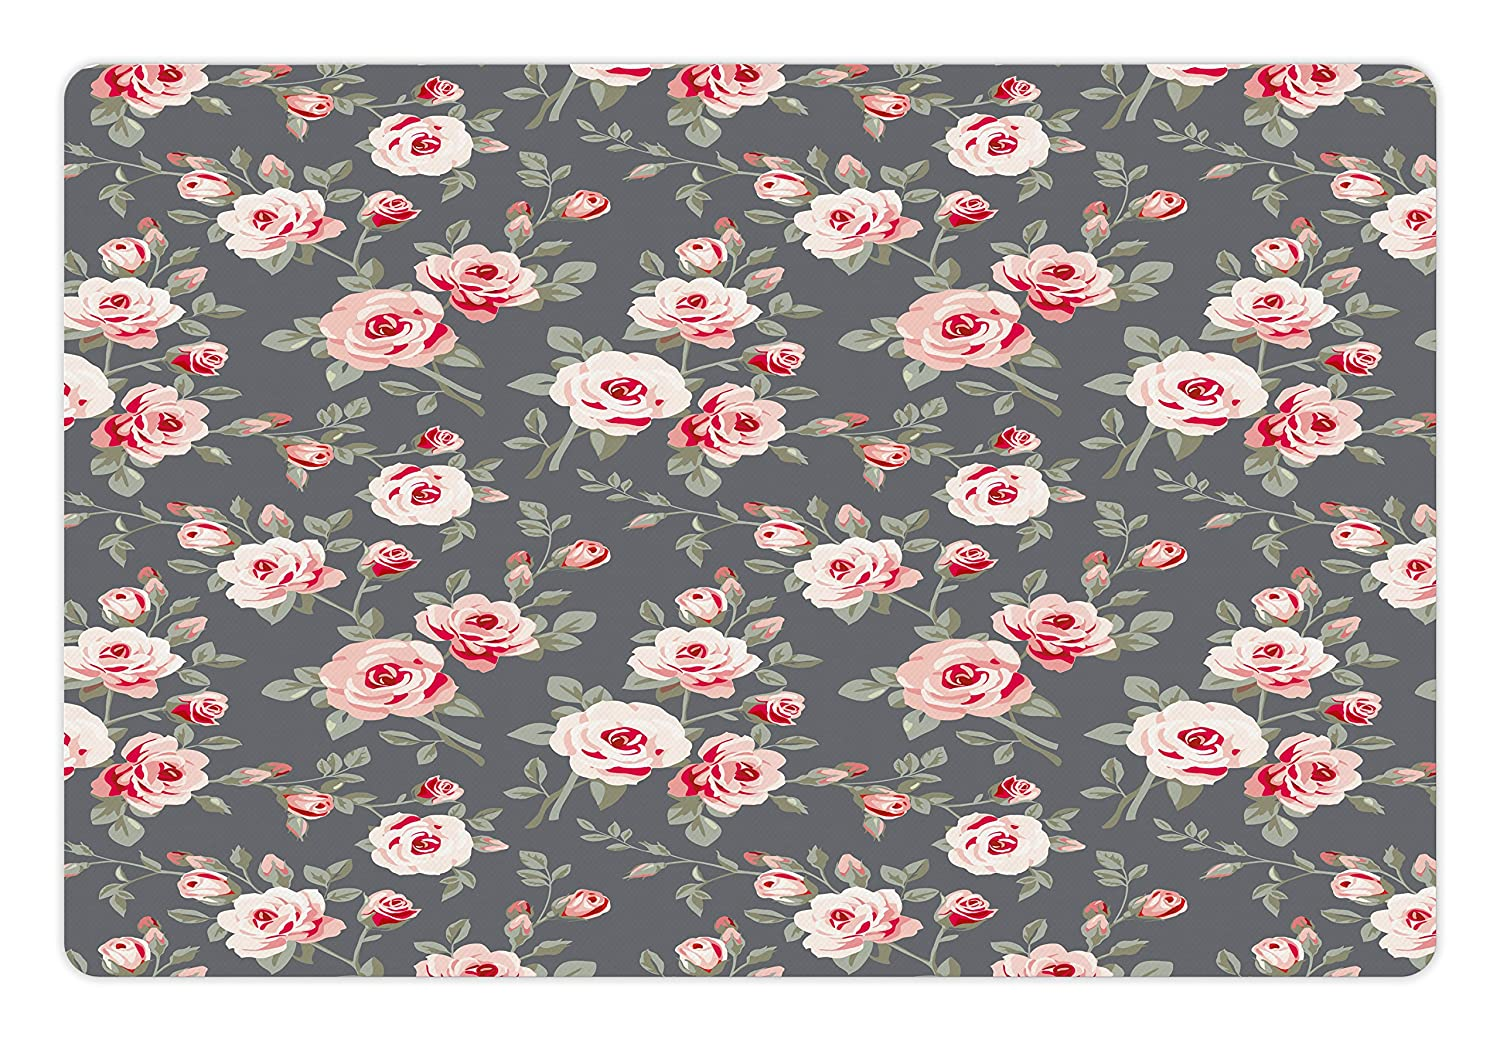 Ambesonne Shabby Chic Pet Mat for Food and Water, Vintage Style Vibrant  Roses Leaves Bush Buds Stems Rural Area Classical Pattern, Rectangle  Non-Slip Rubber ...